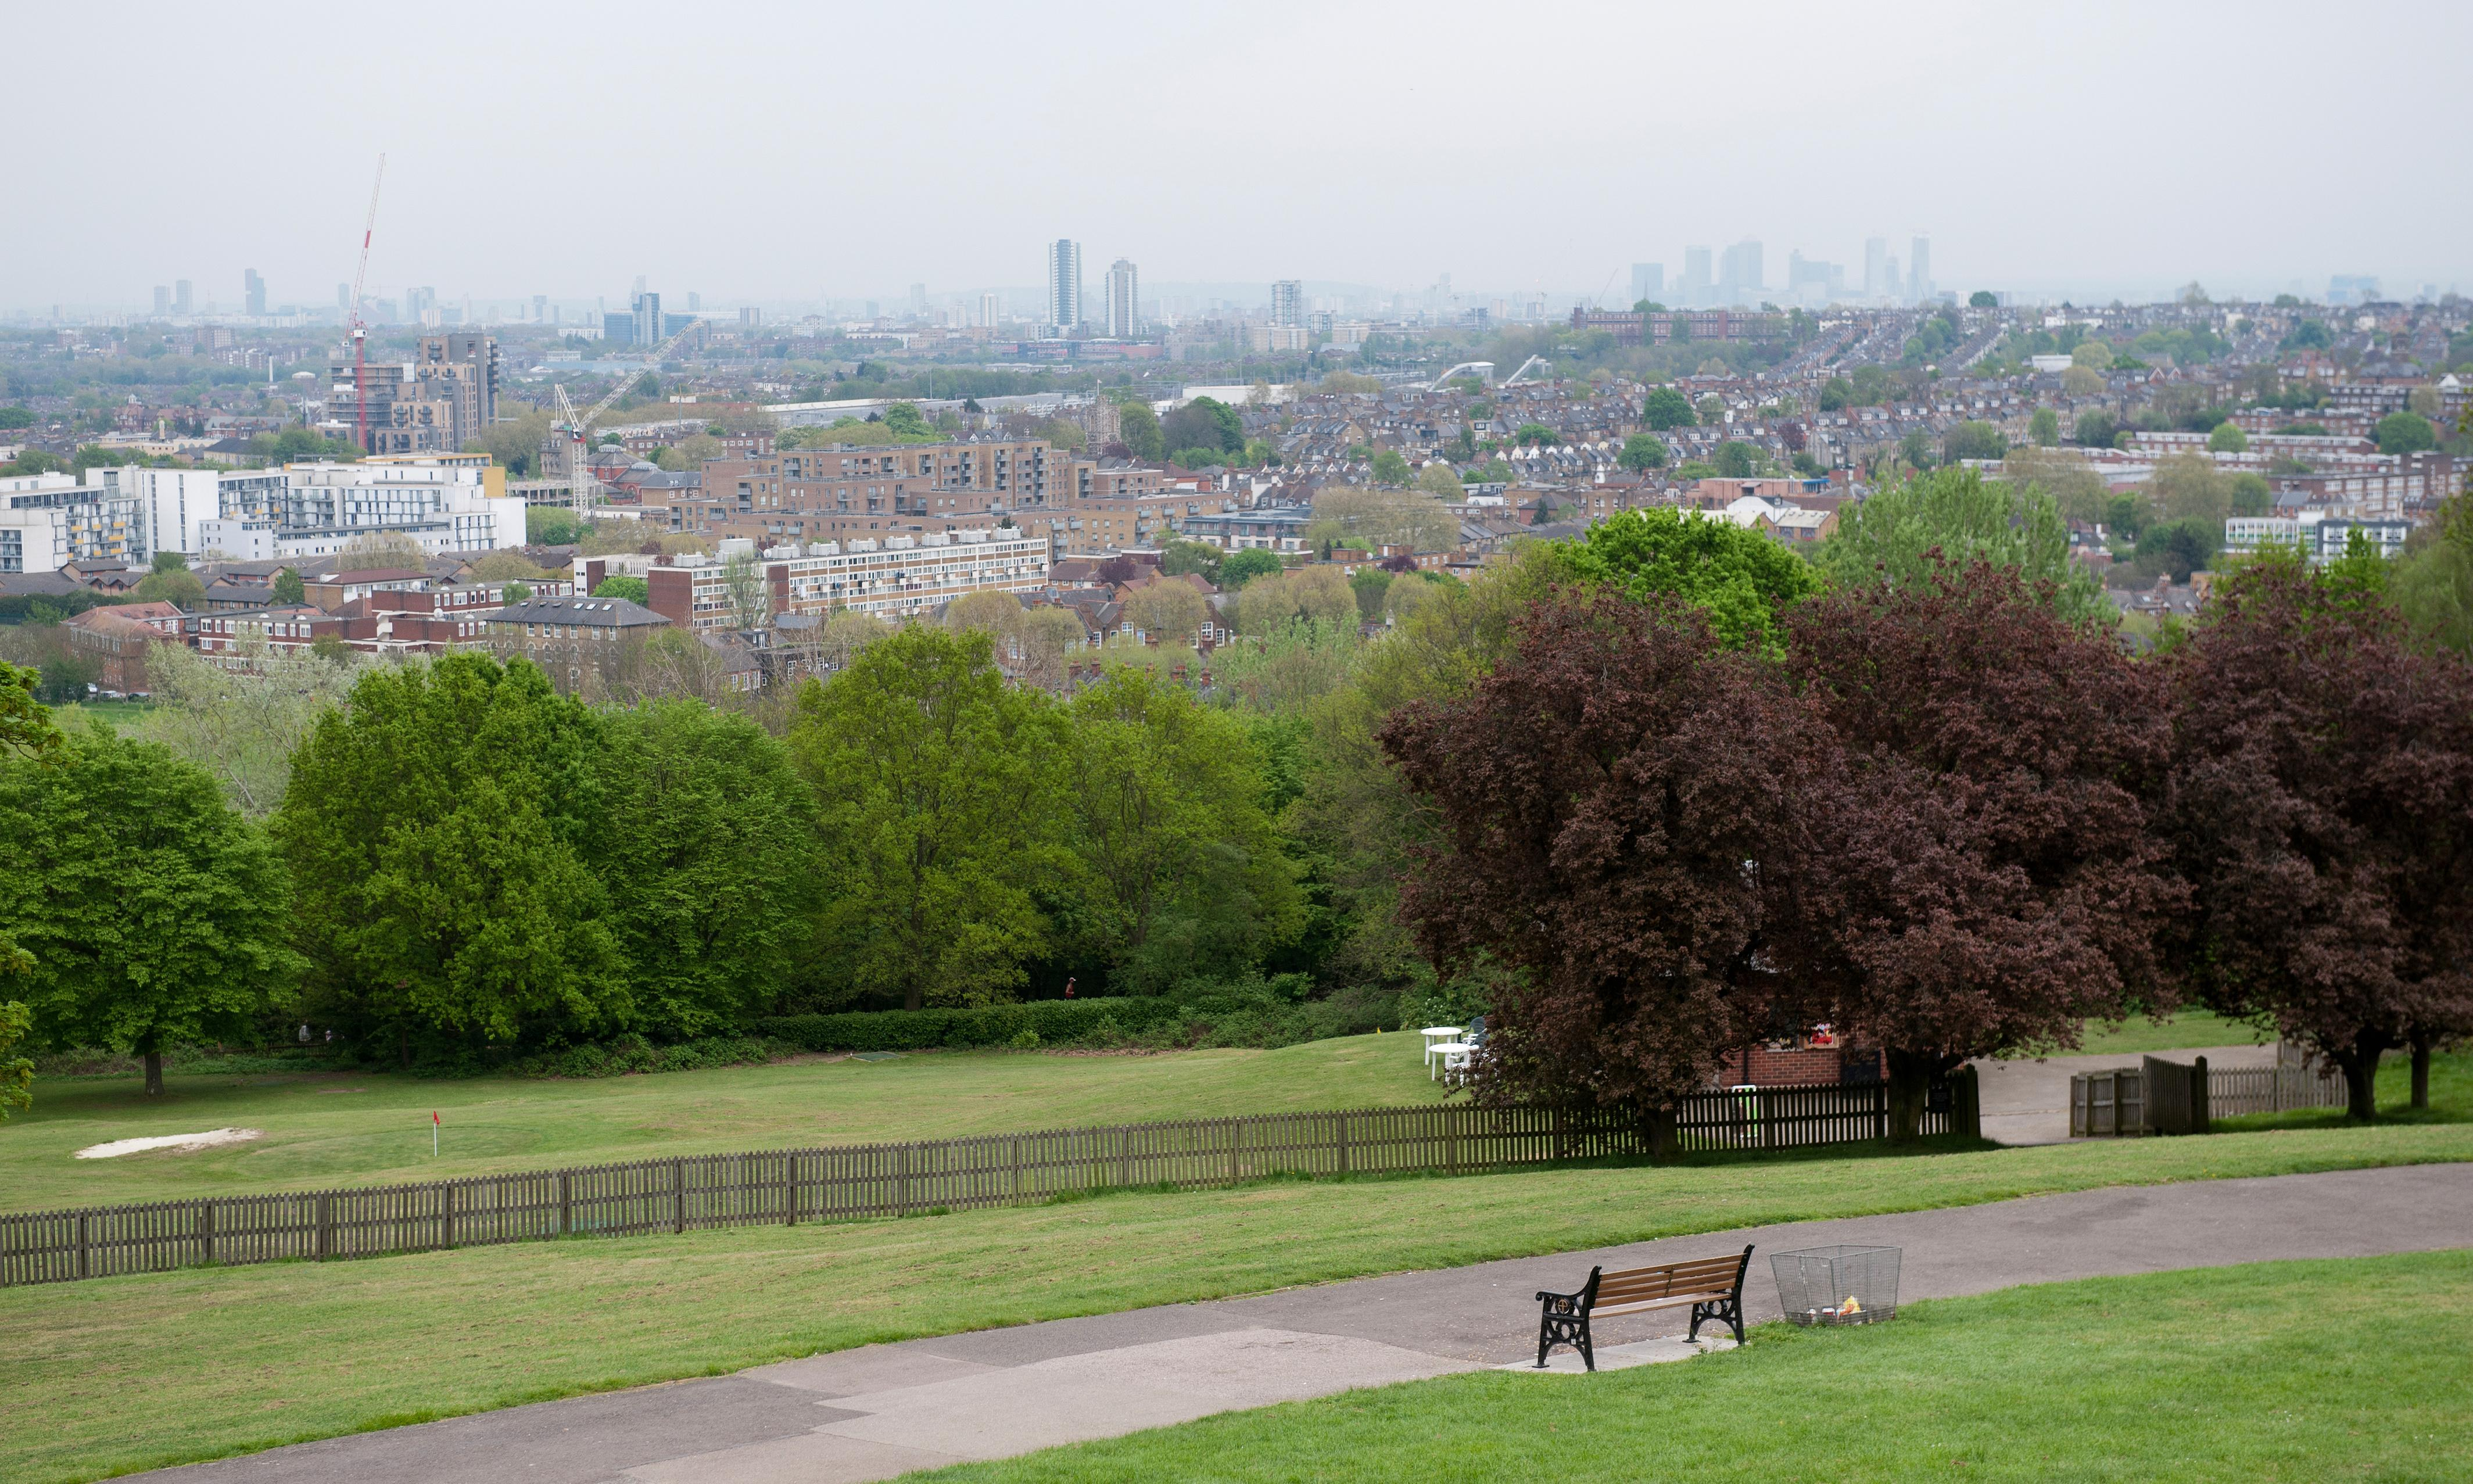 Let's move to Hornsey, north London: pricey, yes, but not bad for these parts